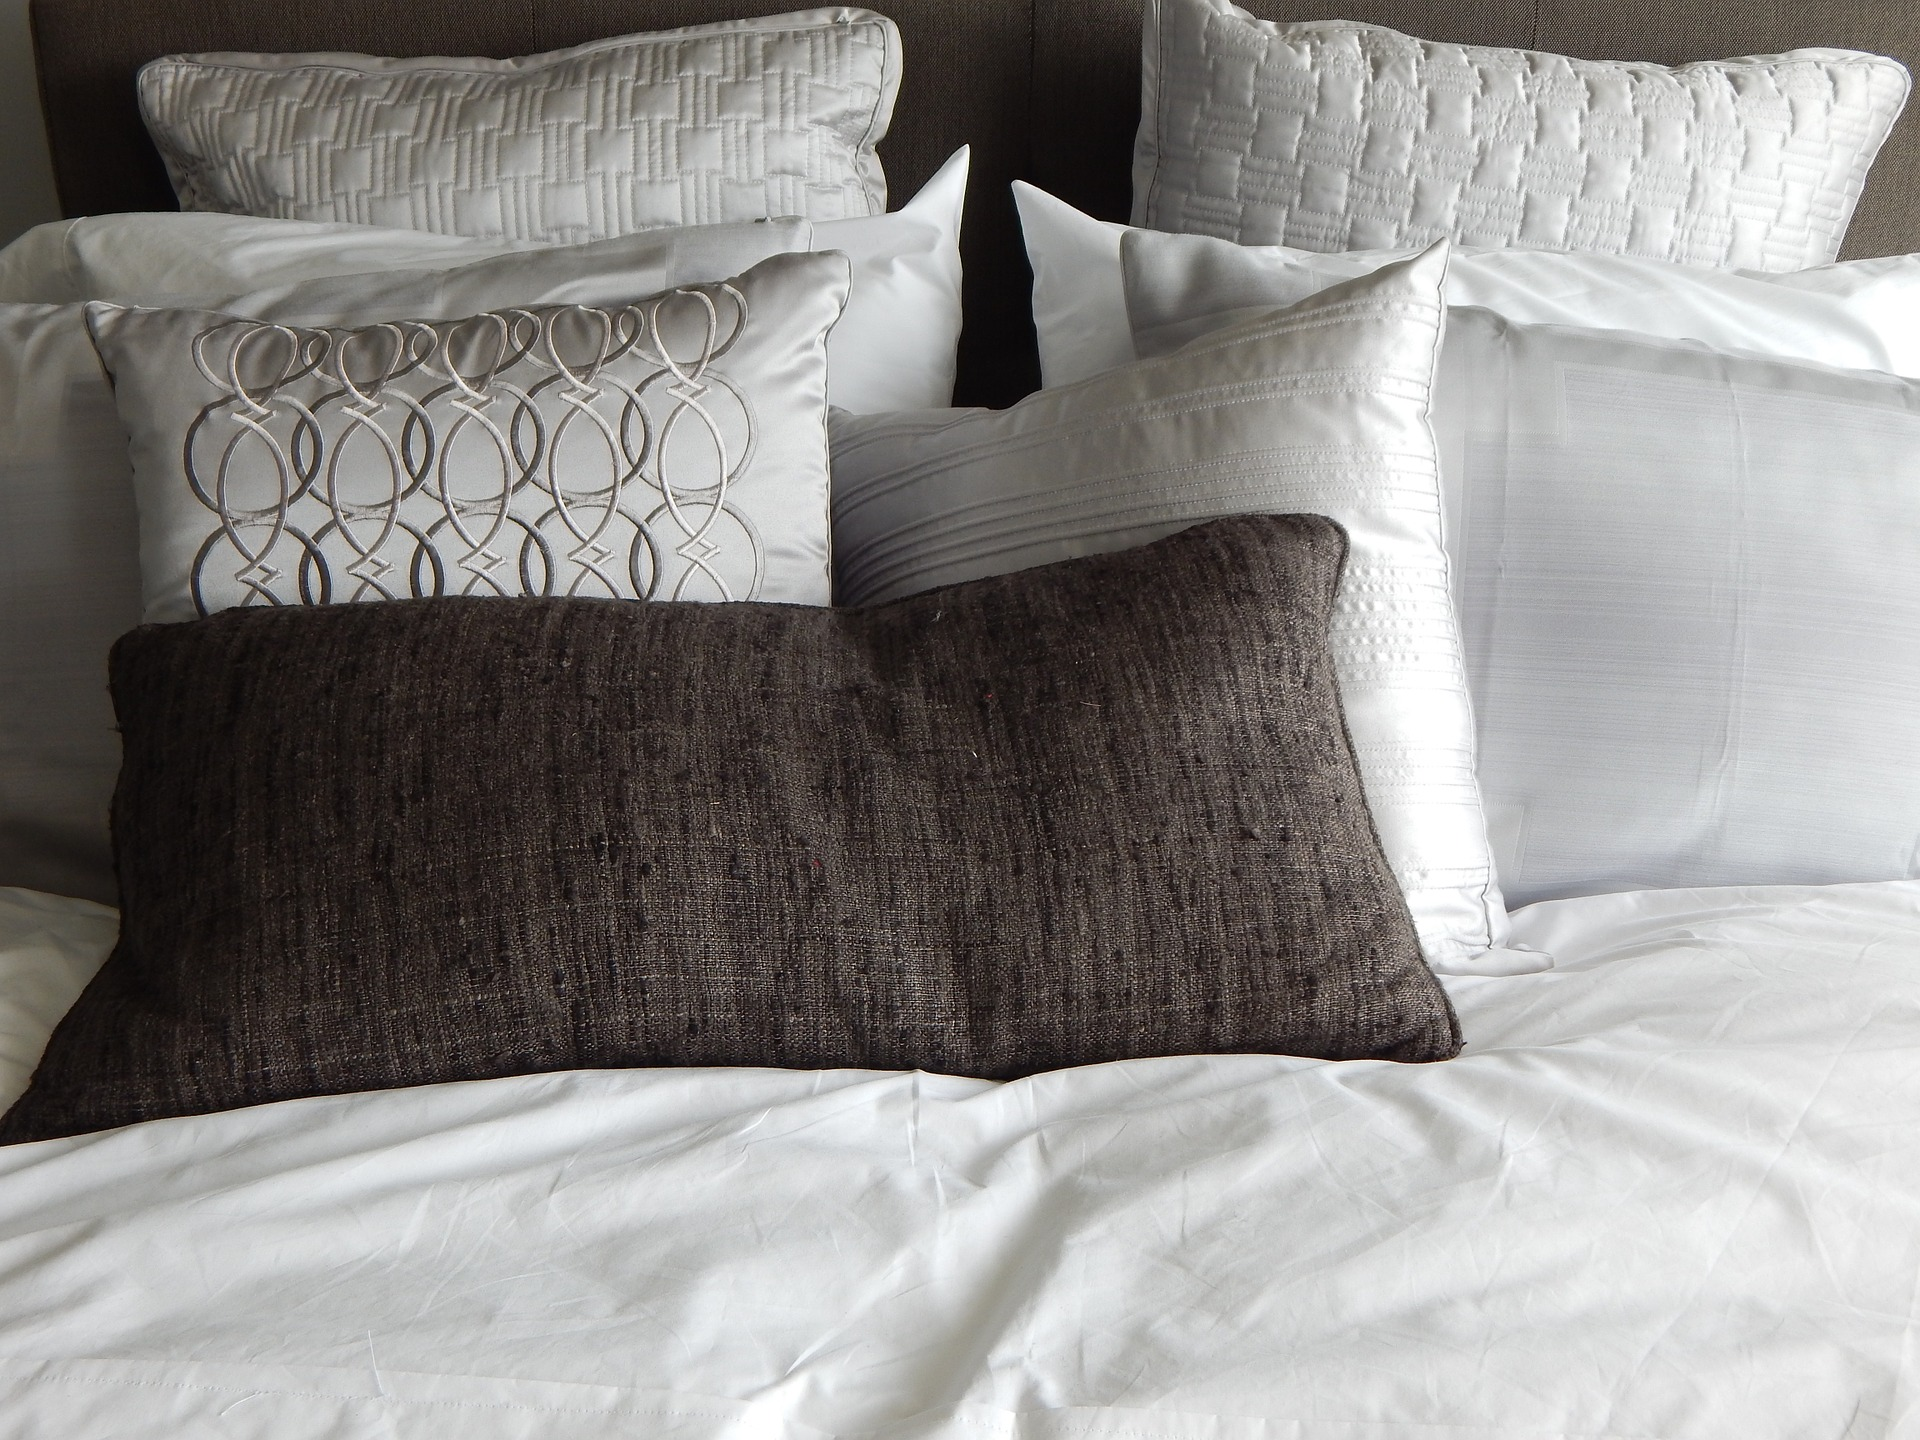 Cuscini Decorativi Per Letto.The 1 Simple And Daily Choice That Can Change Your Life Season